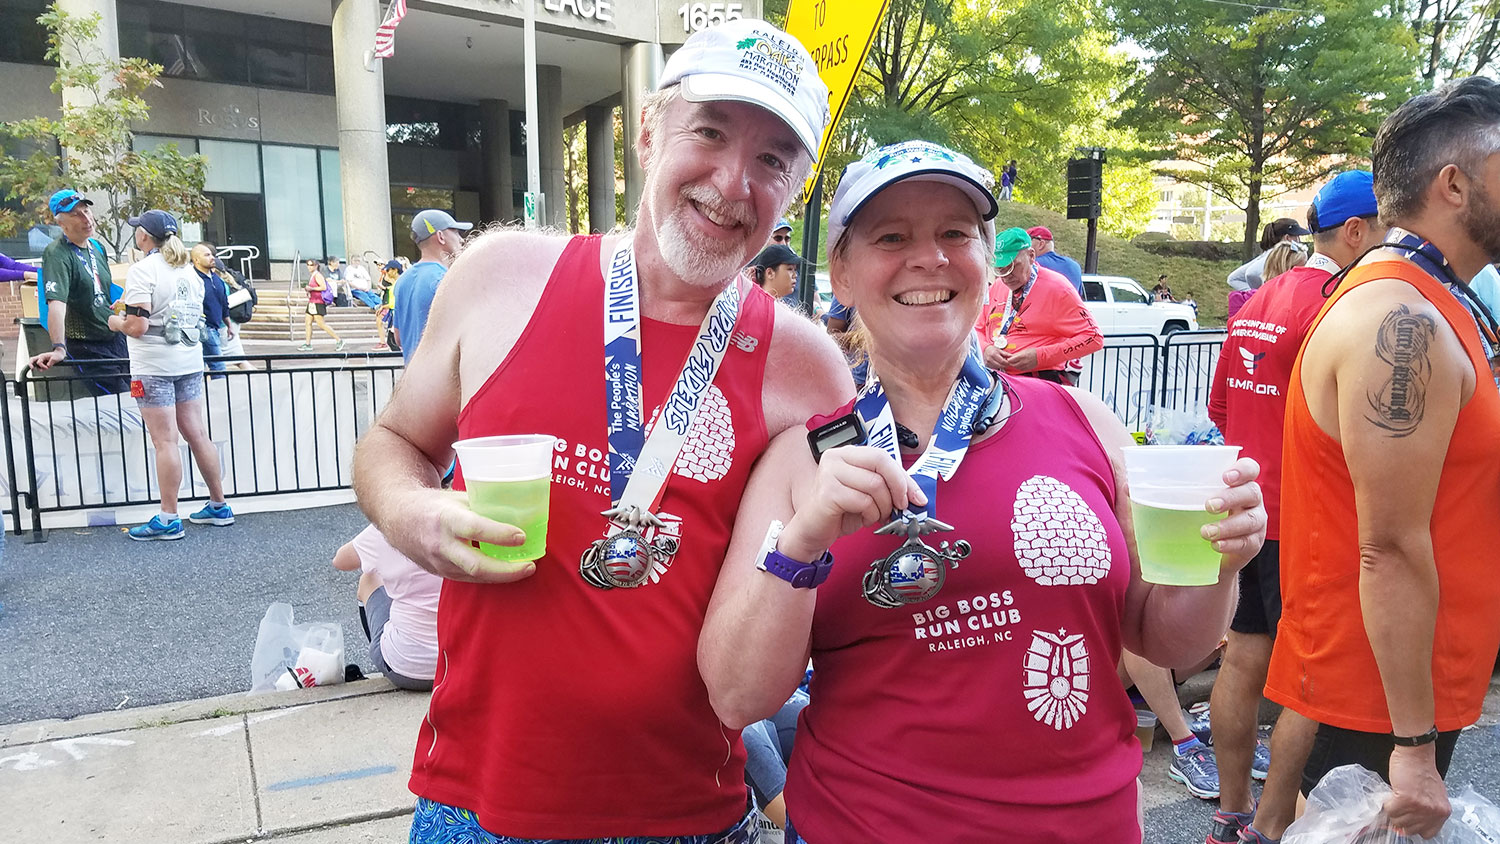 man and woman wearing marathon medals after a race